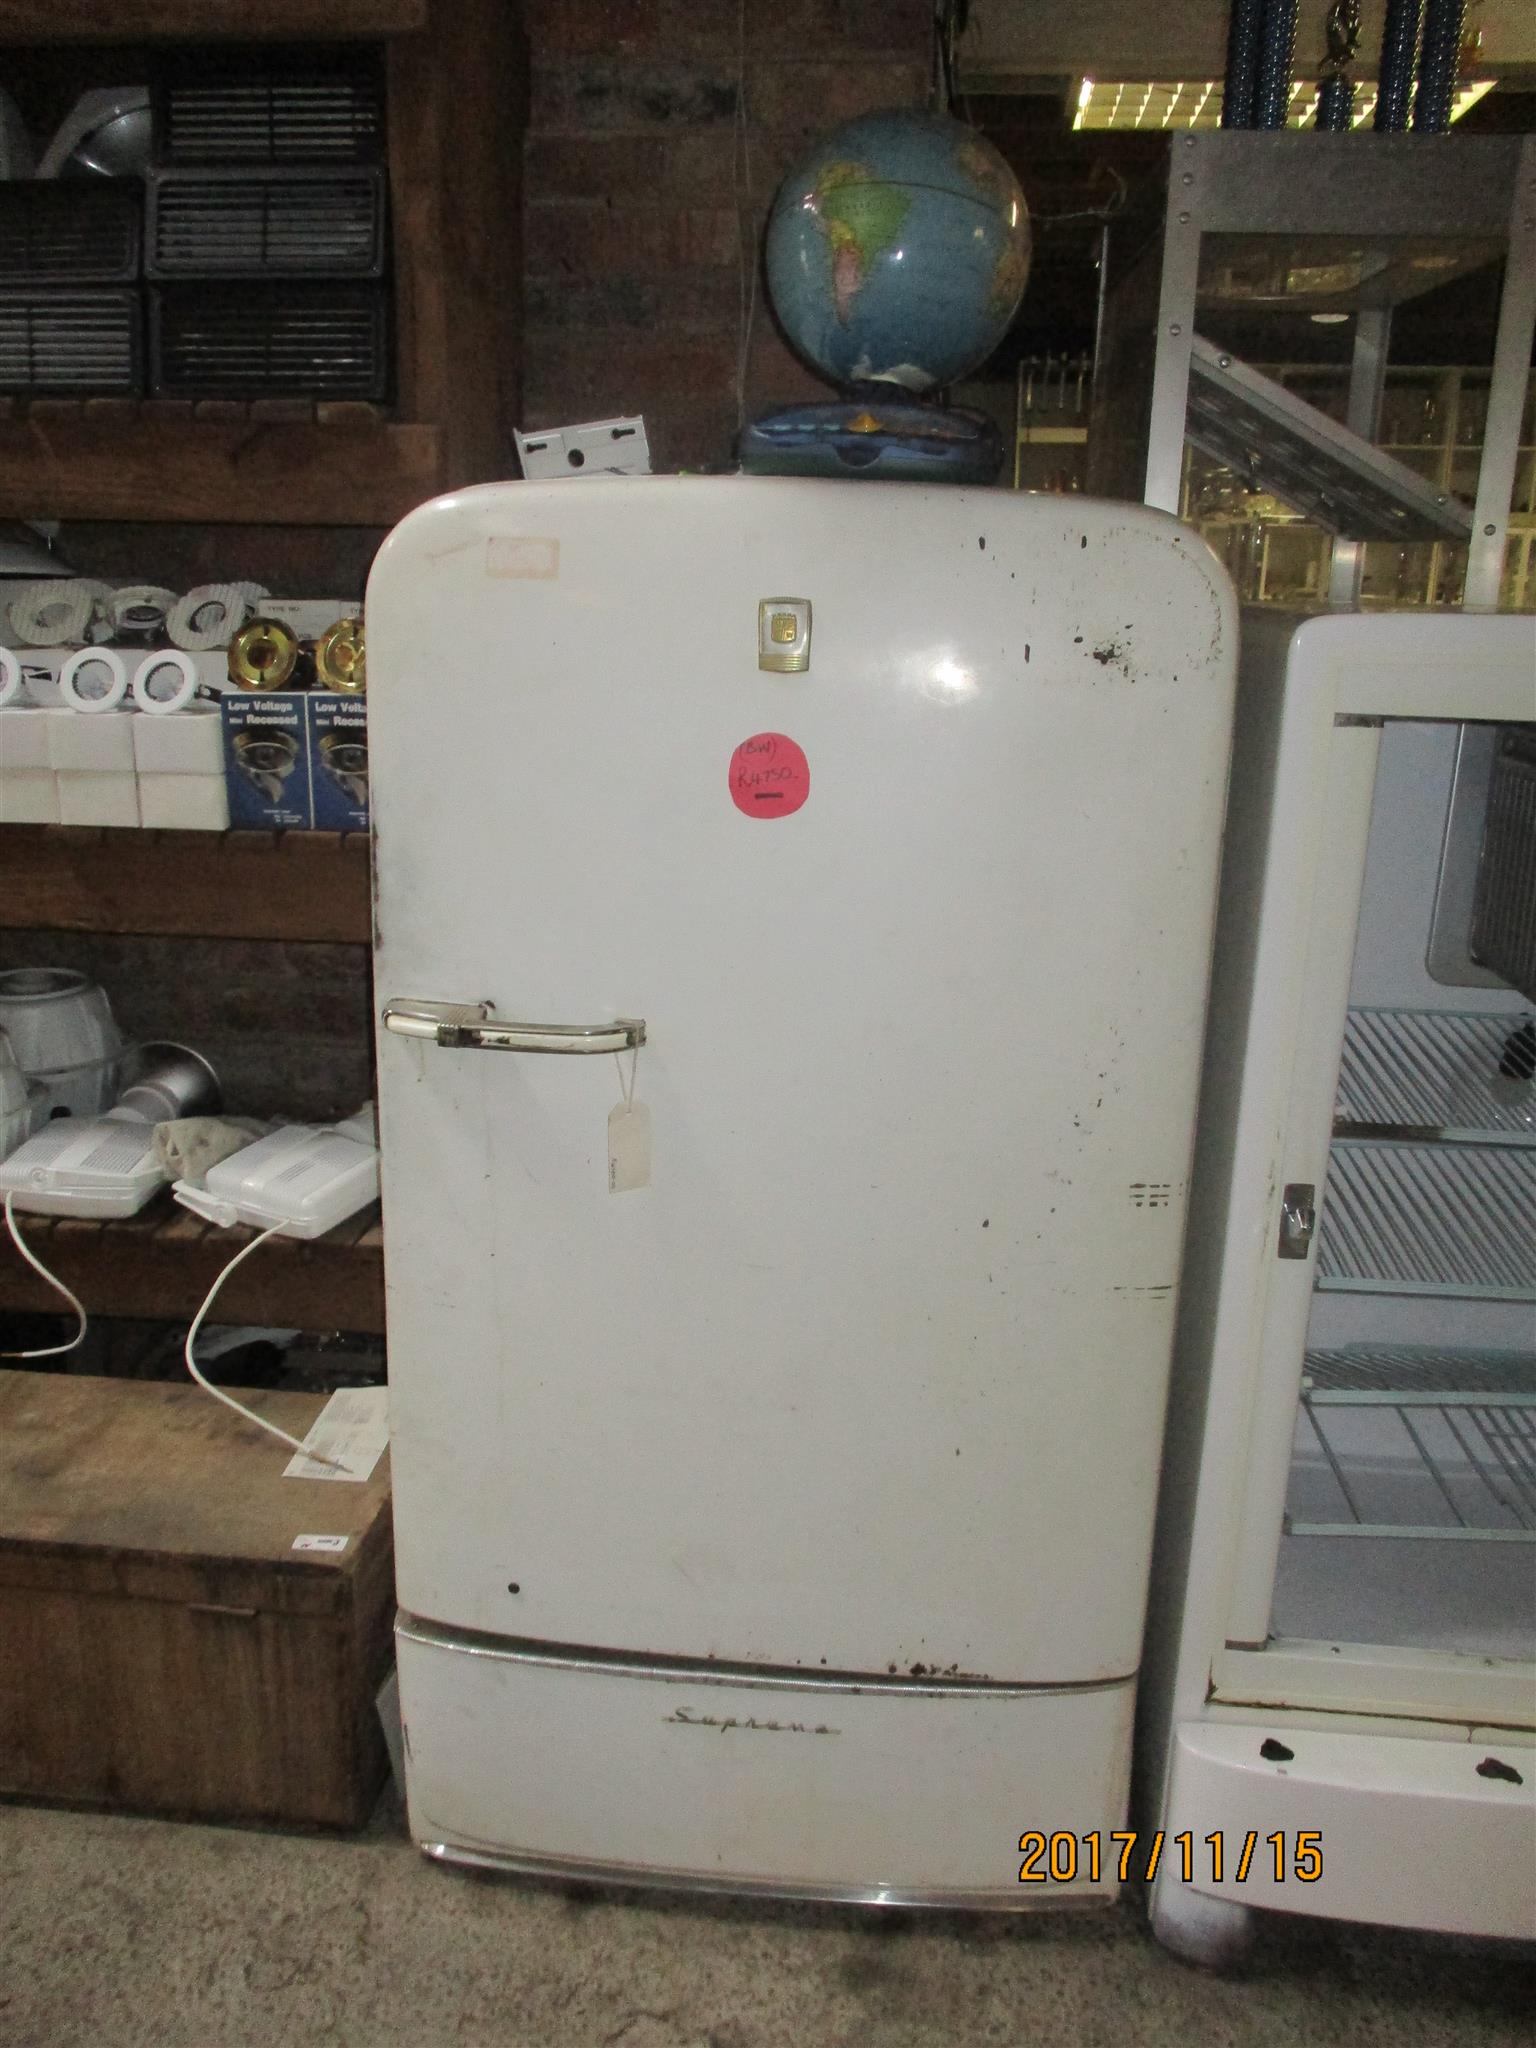 Collectable MW fridge for sale in working condition